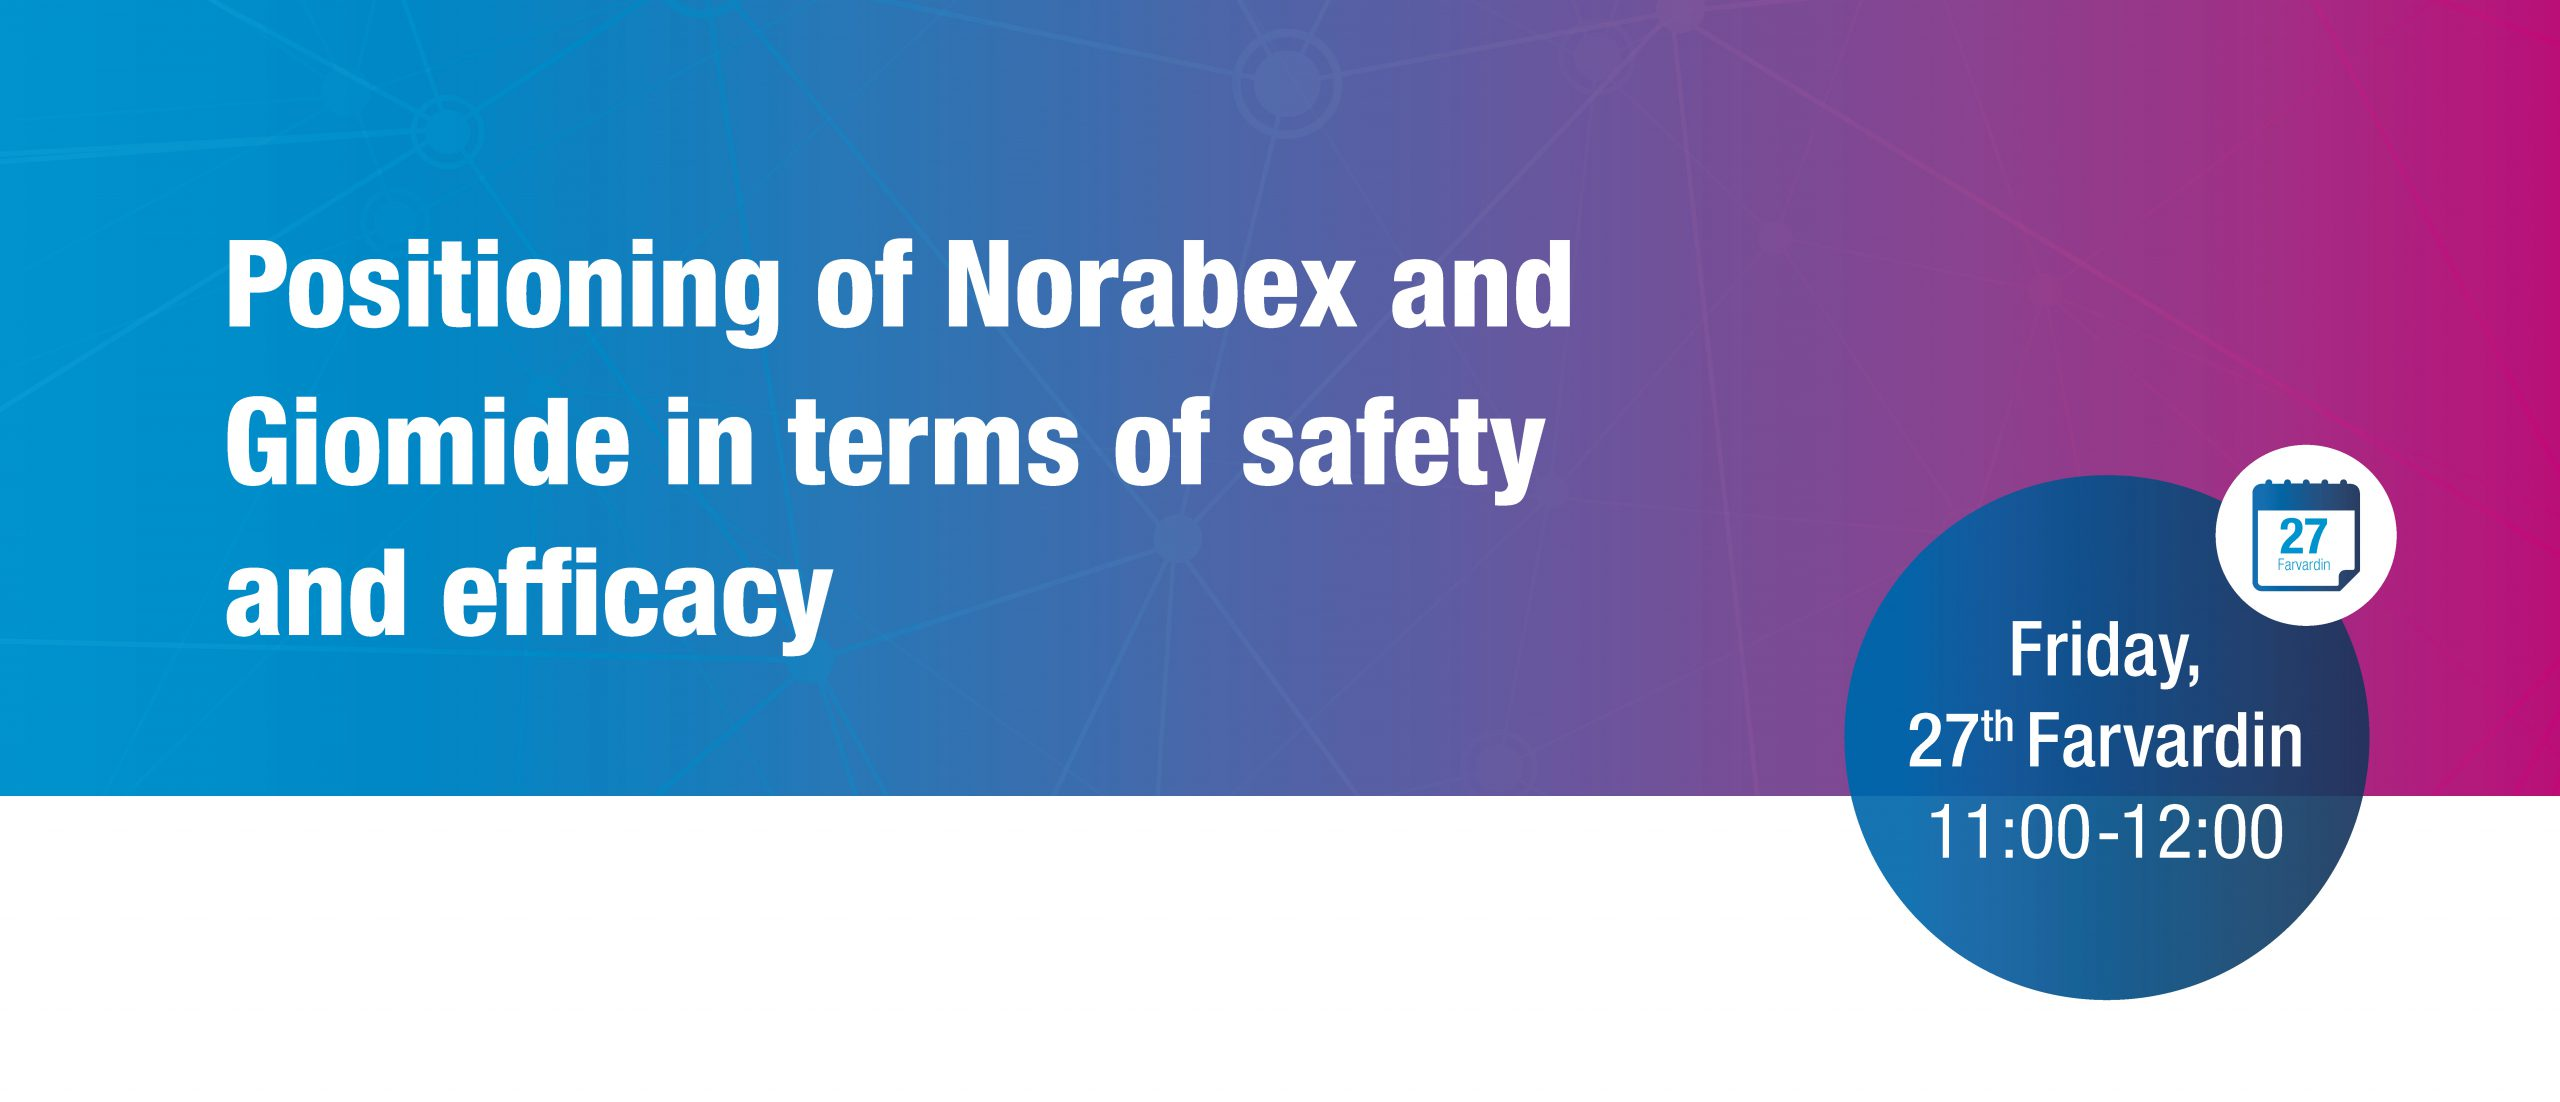 Positioning of Norabex and Giomide in terms of safety and efficacy